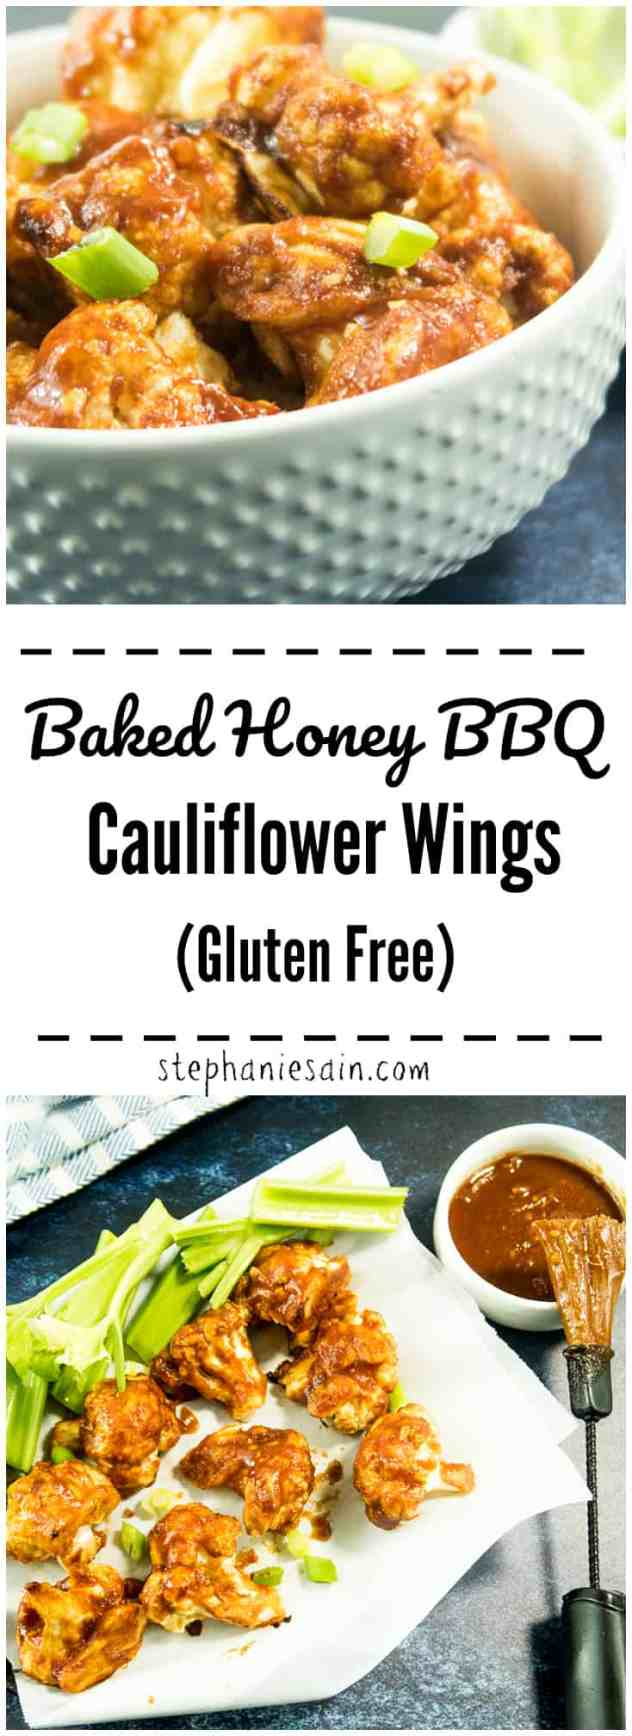 These Baked Honey BBQ Cauliflower Wings are lightly coated in a gluten free batter & baked. Then coated with a homemade Honey BBQ sauce. Sweet, sticky and delicious. Perfect for an appetizer or main dish with sides.